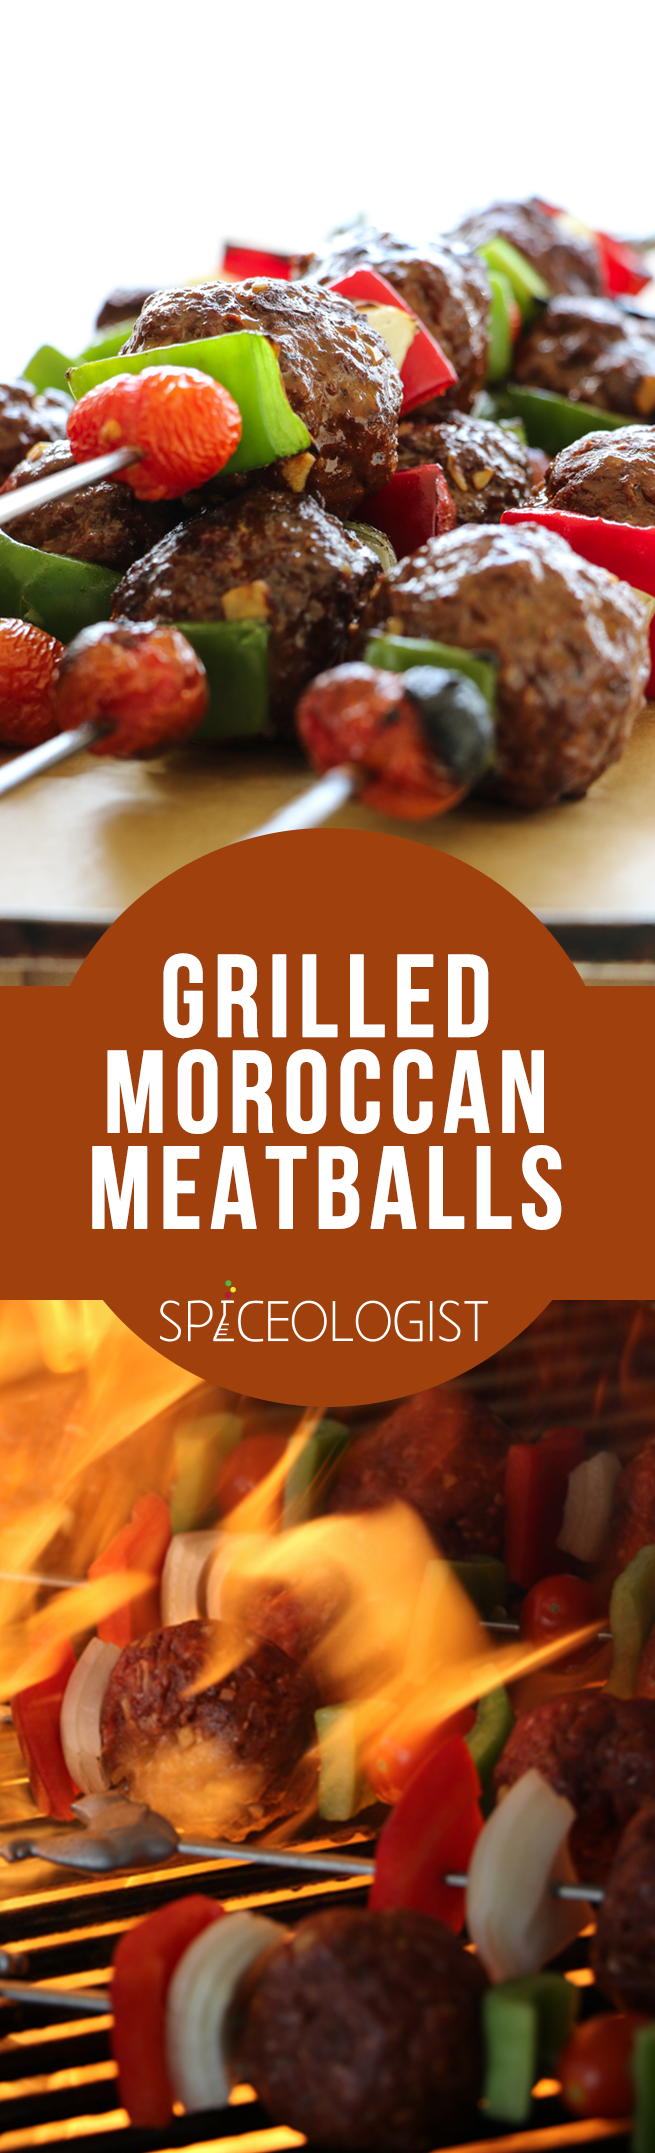 Epic Grilled Moroccan Meatballs | spiceologist.com